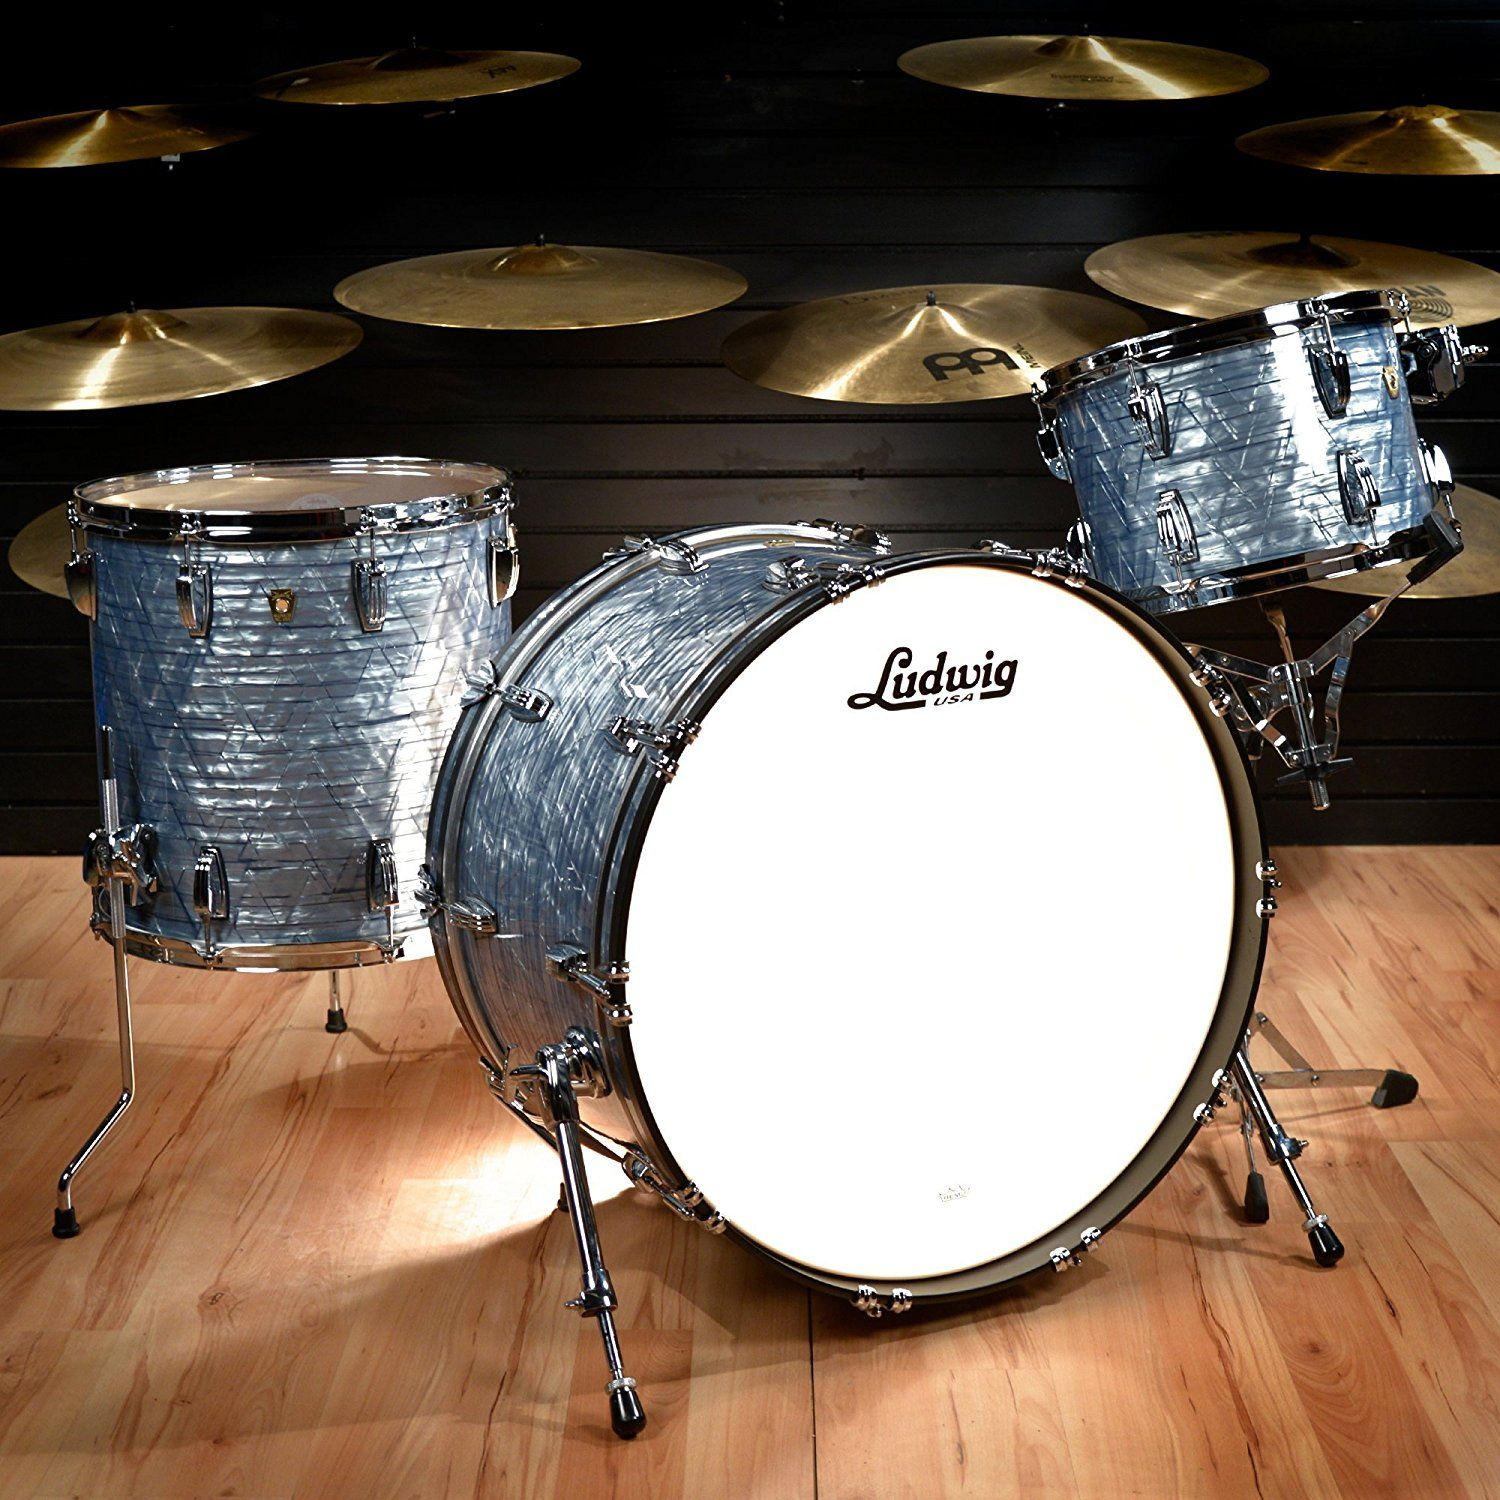 Ludwig 13 16 24 Classic Maple Pro Beat Kit Sky Blue Pearl Acoustic     Ludwig 13 16 24 Classic Maple Pro Beat Kit Sky Blue Pearl Acoustic Drum